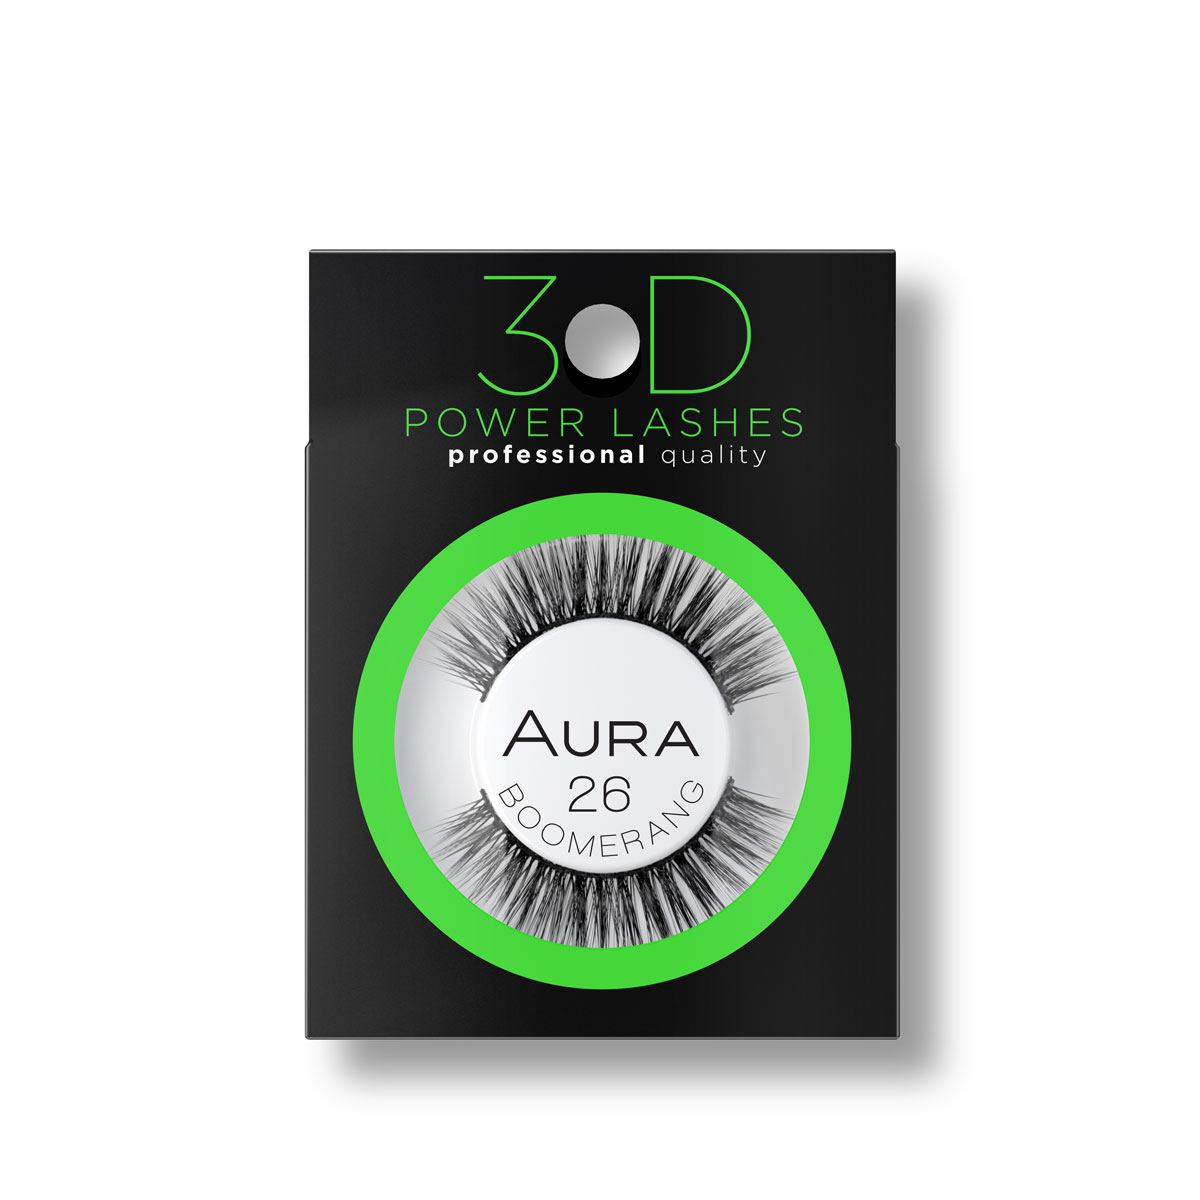 3D Veštačke trepavice 3D POWER LASHES 26 Boomerang